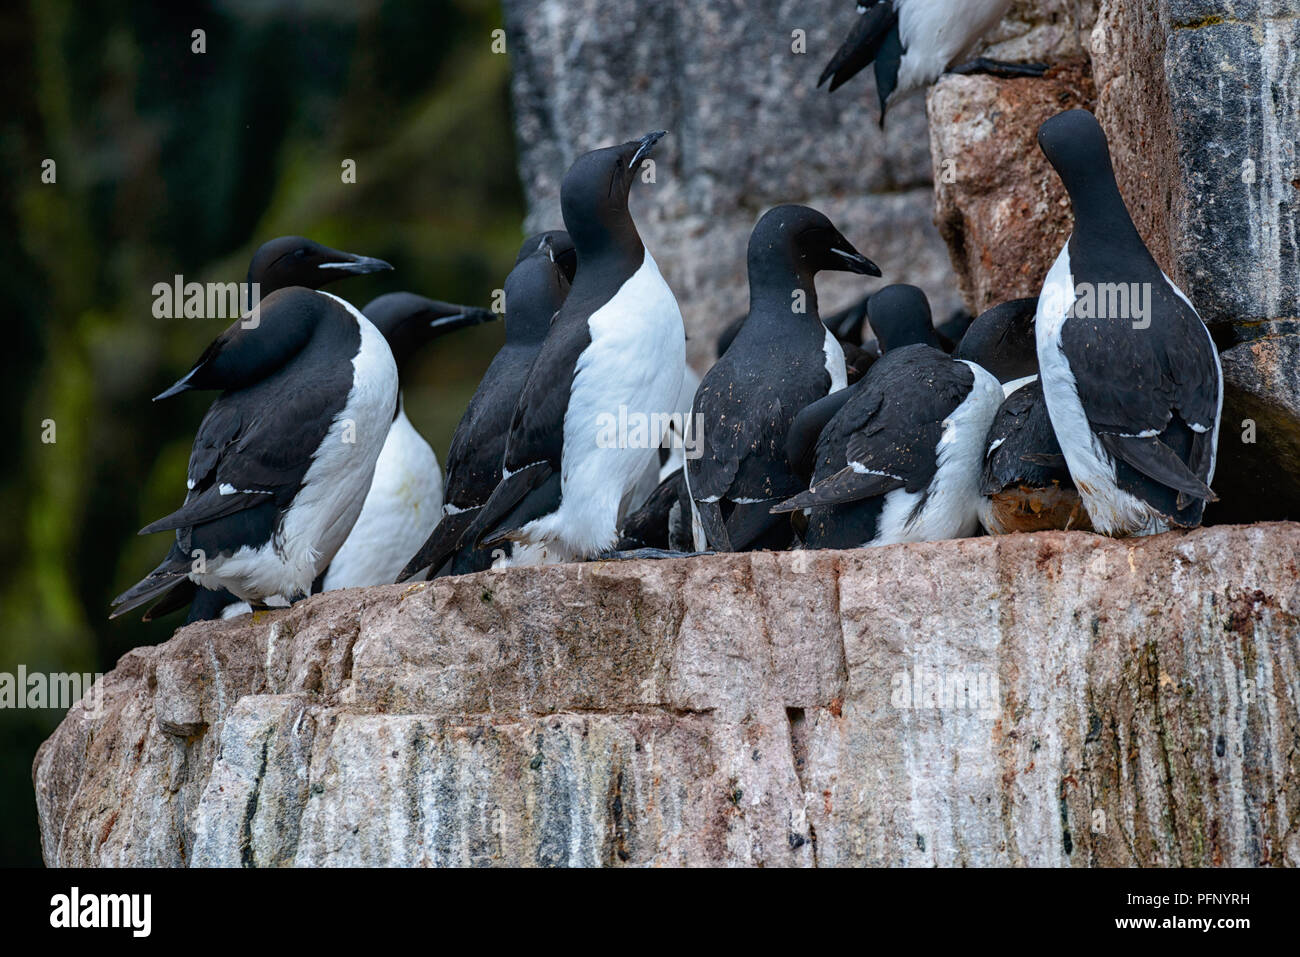 Colony of thick-billed murres at Alkefjellet, Svalbard, Norway. Stock Photo